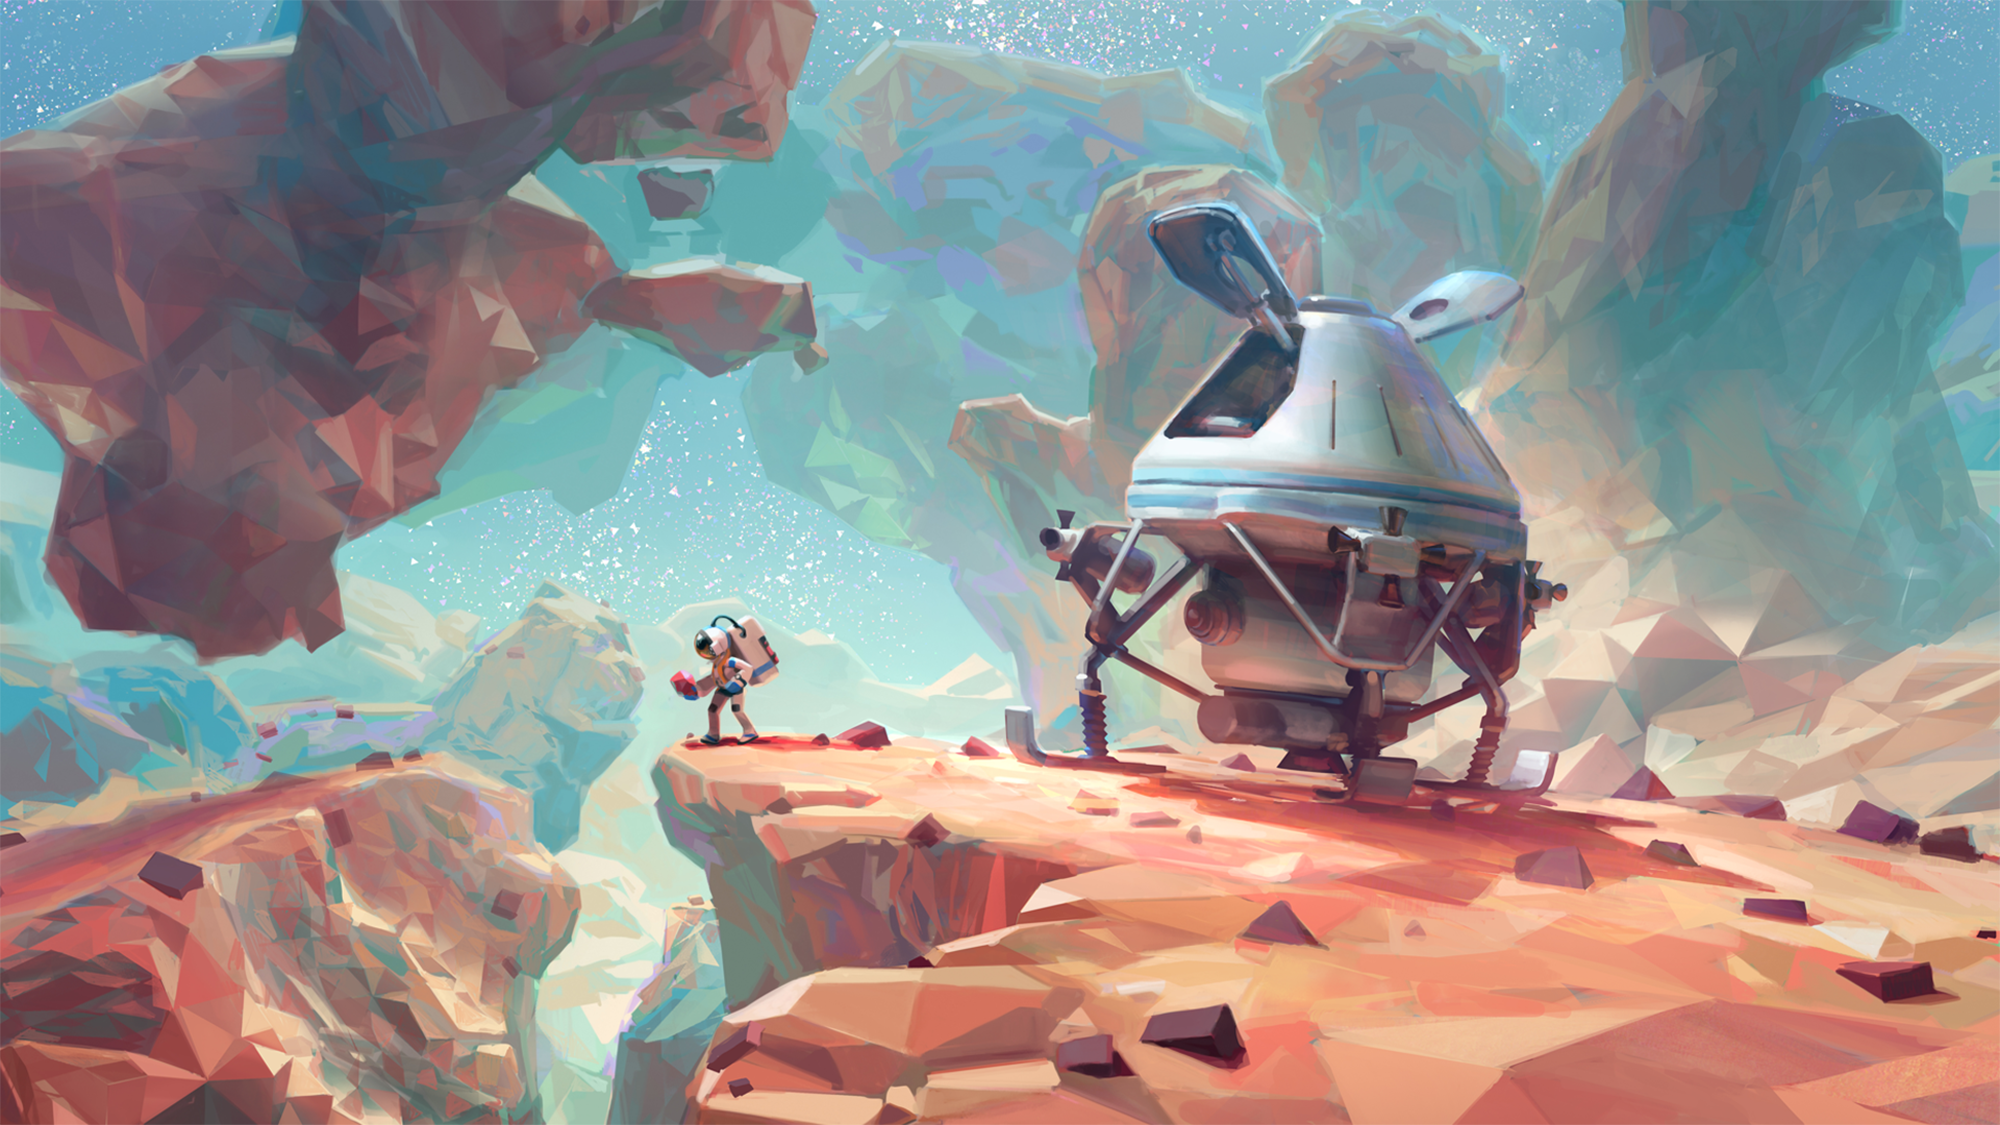 ASTRONEER Backgrounds, Compatible - PC, Mobile, Gadgets| 2000x1125 px